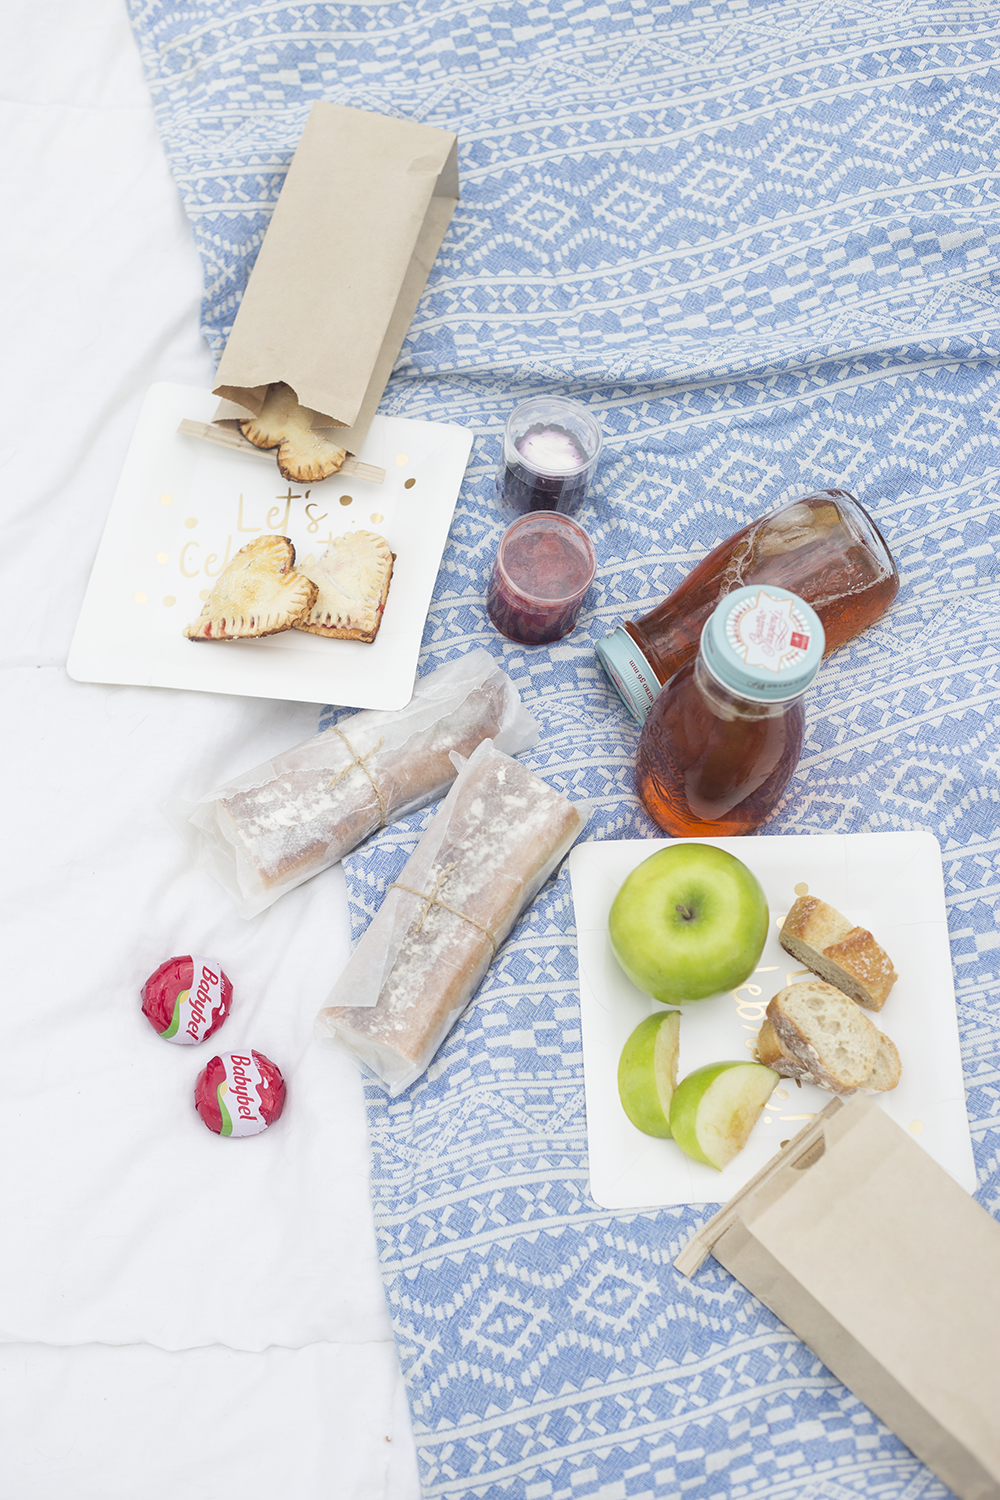 picnic ideas | picnic on the go | how to plan a picnic